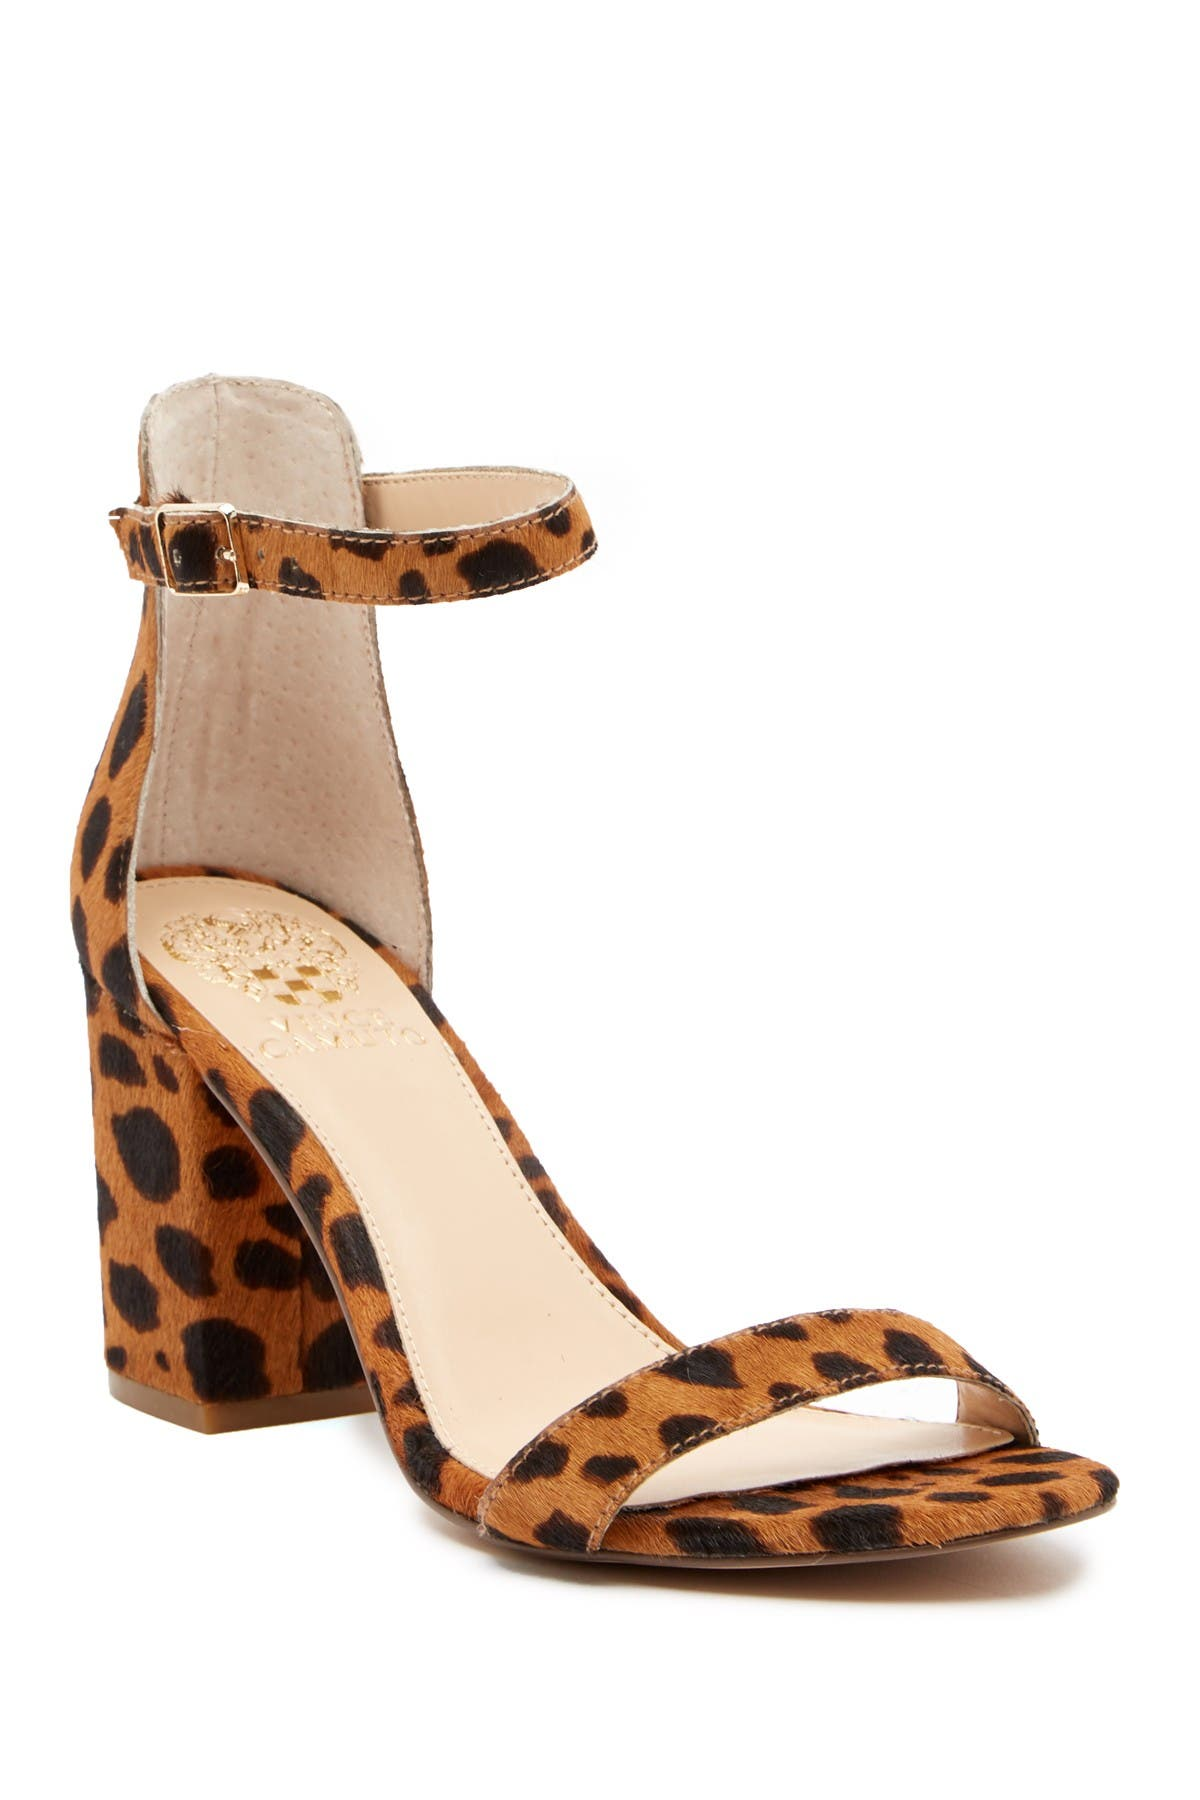 Image of Vince Camuto Beah Block Heel Ankle Strap Sandal